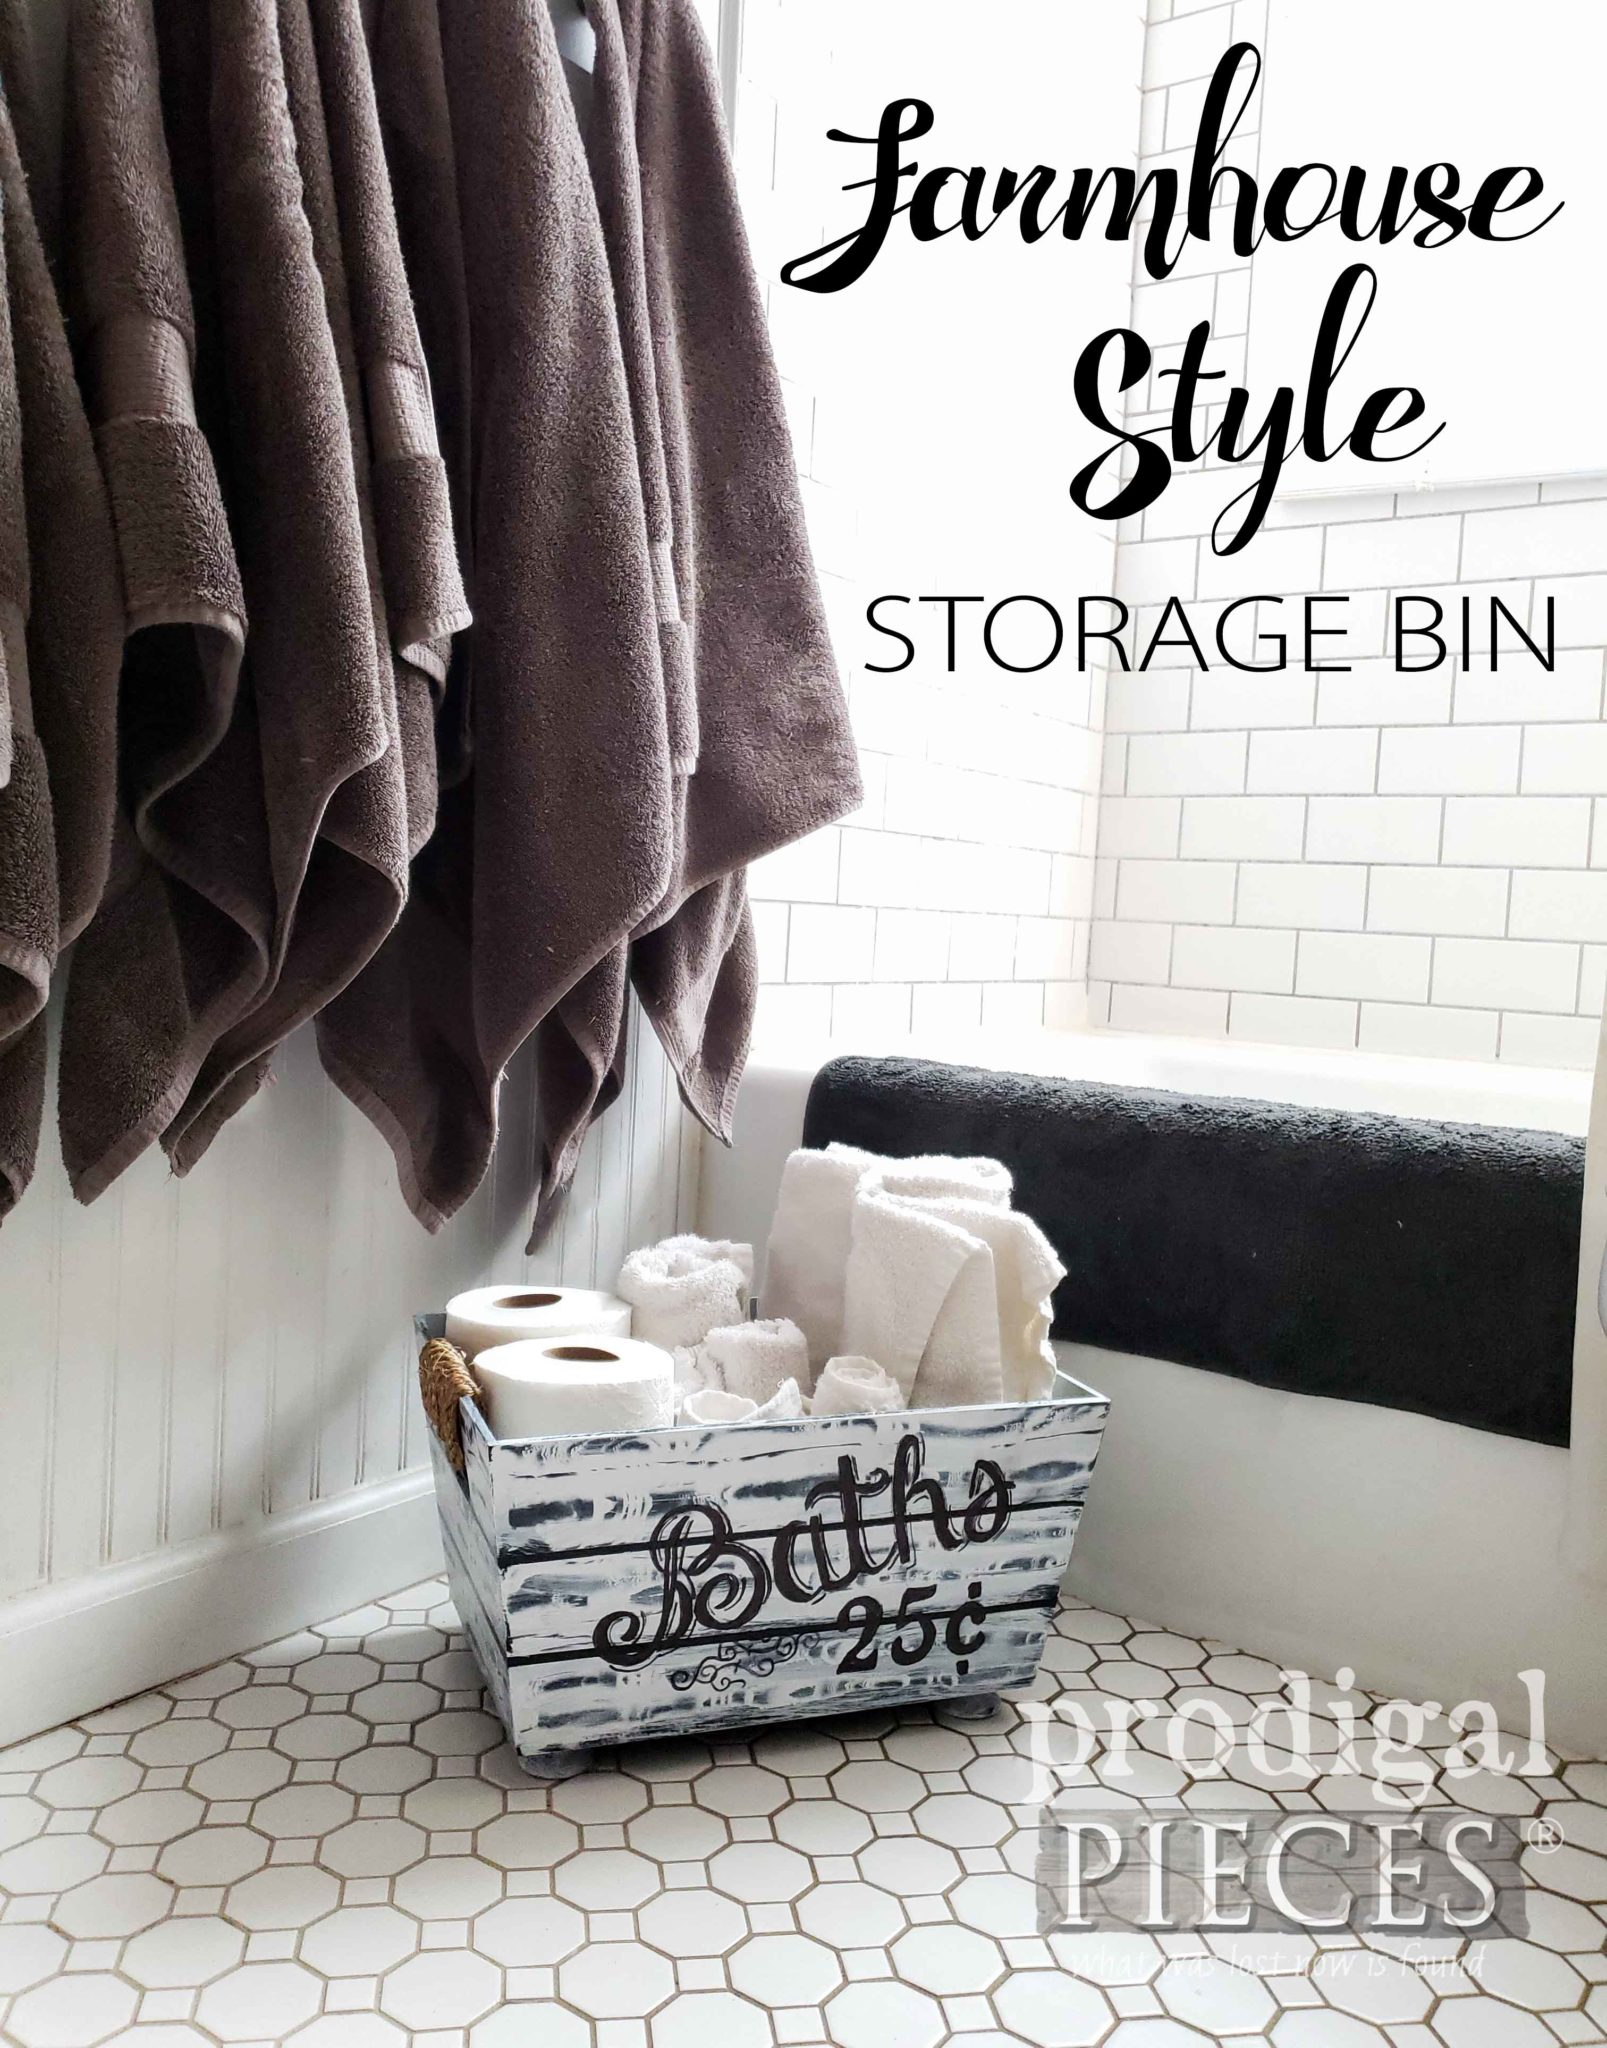 Create this faux wood farmhouse style storage bin using the video tutorial by Larissa of Prodigal Pieces | prodigalpieces.com #prodigalpieces #diy #home #farmhouse #homedecor #vintage #handmade #homedecorideas